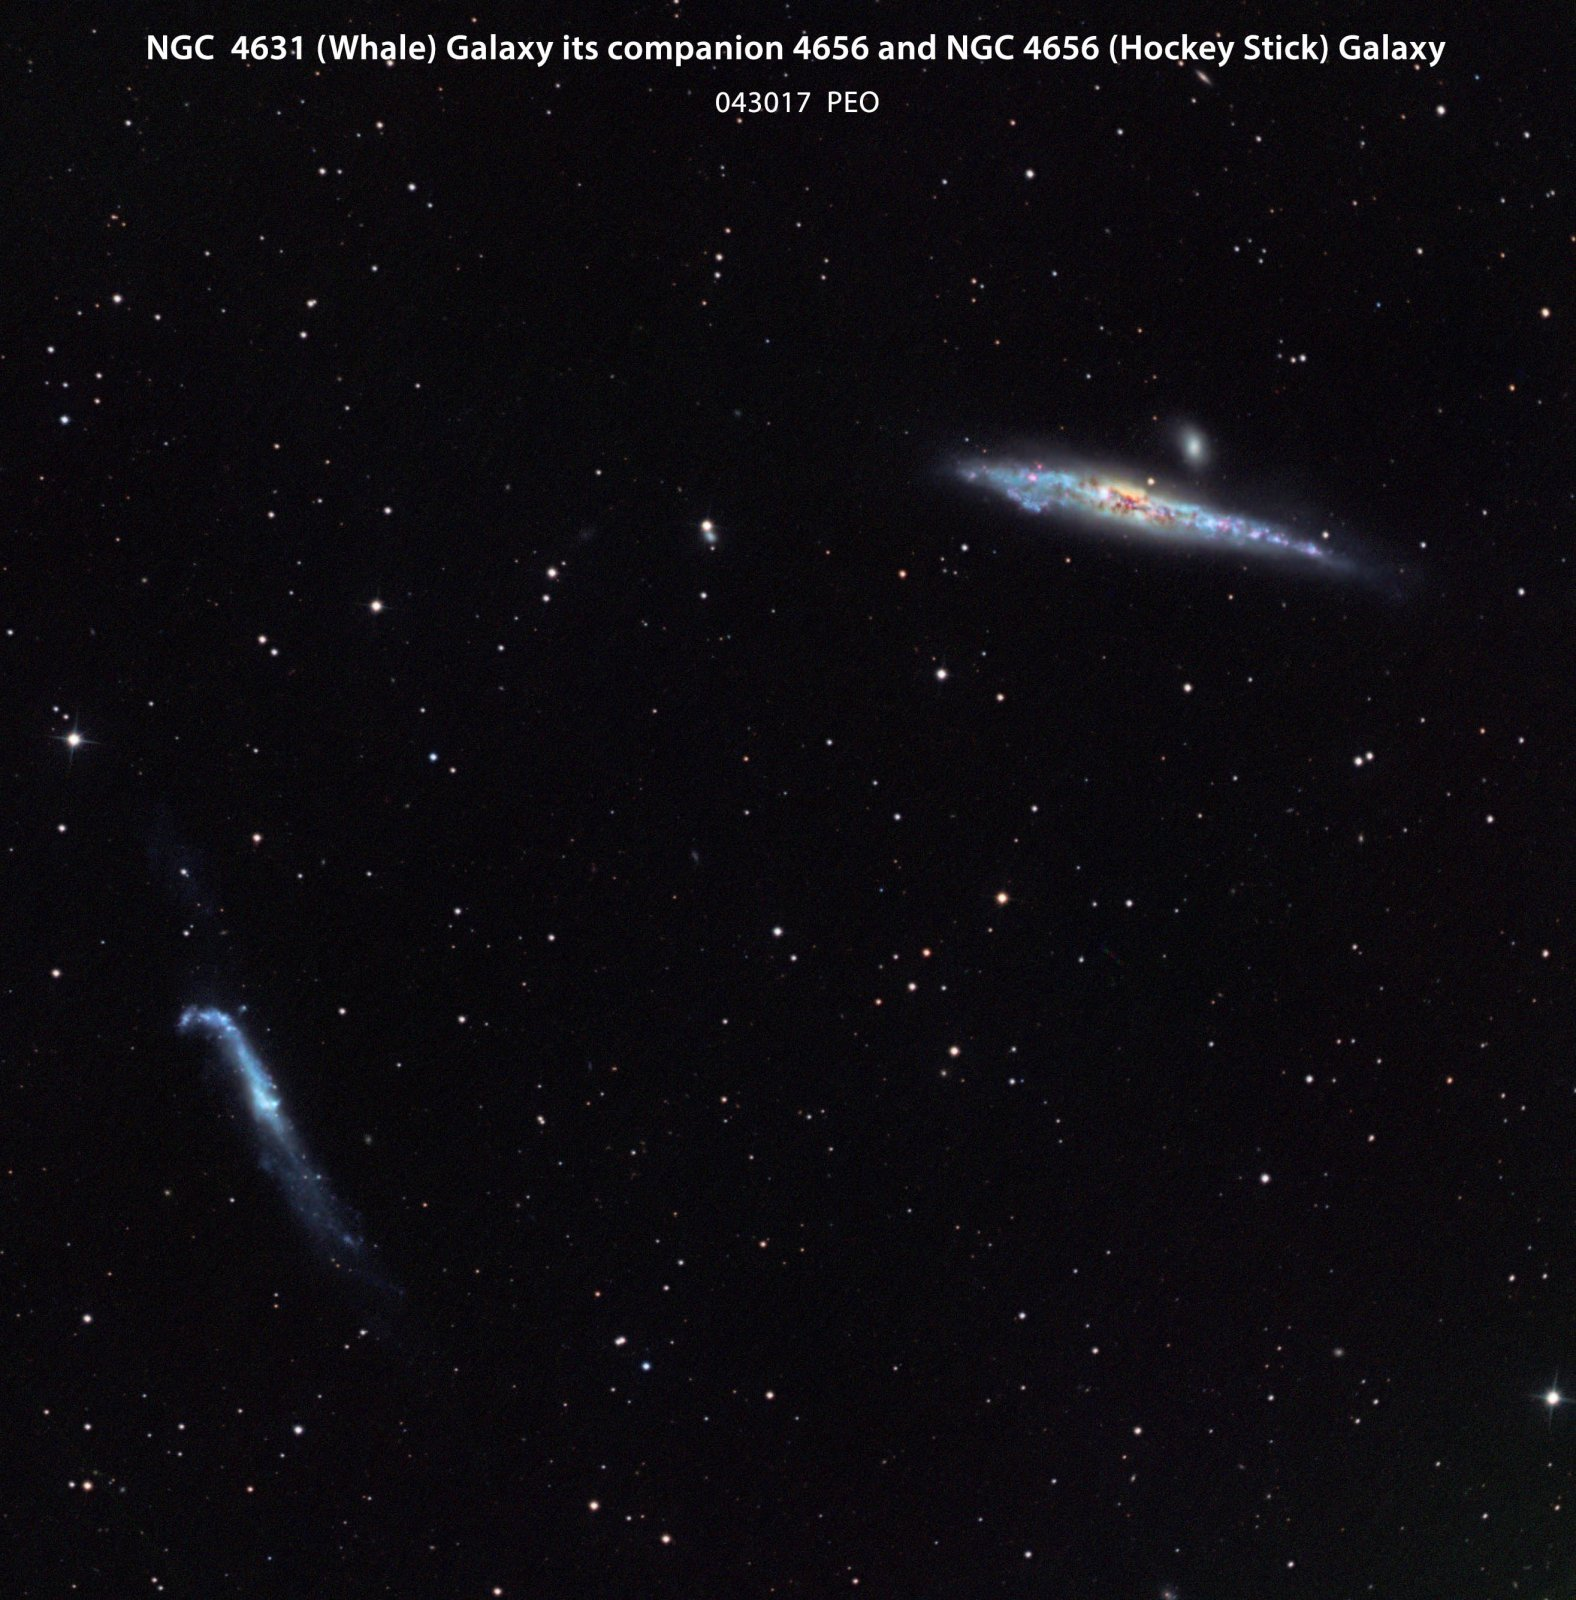 The Whale galaxy and the Hockey Stick